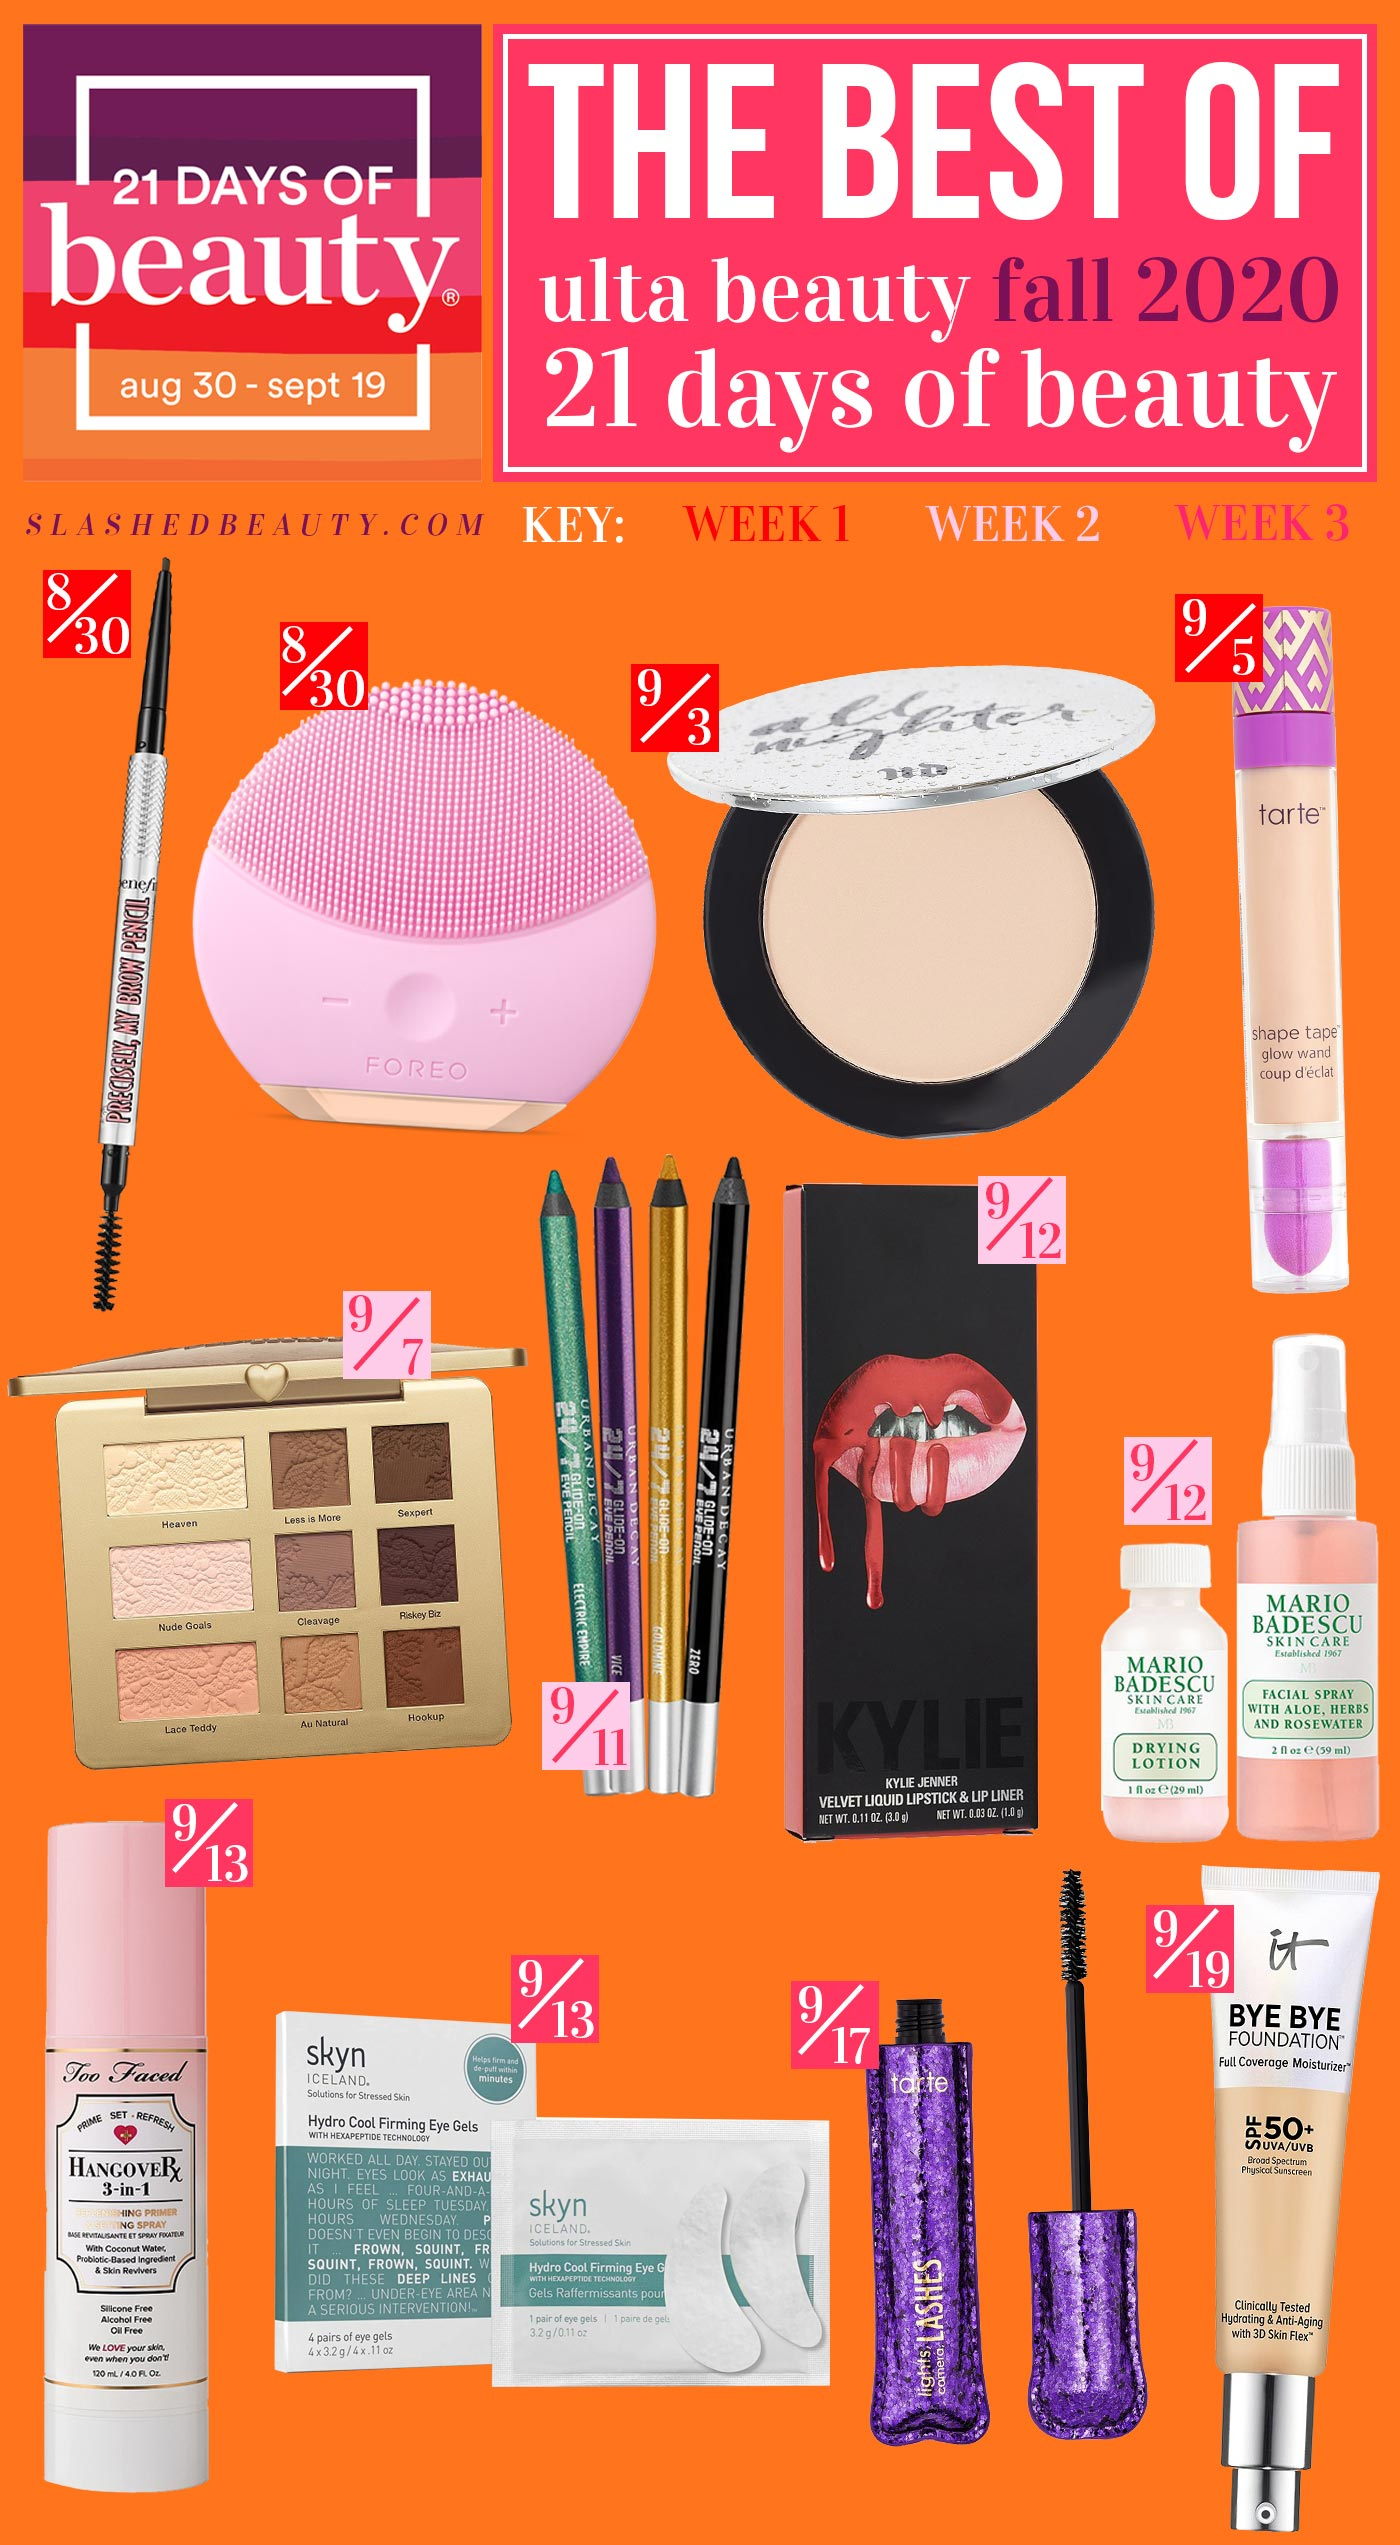 The 12 Best Ulta 21 Days of Beauty 2020 Fall Deals | Ulta Beauty 21 Days of Beauty 2020 September Calendar | Slashed Beauty